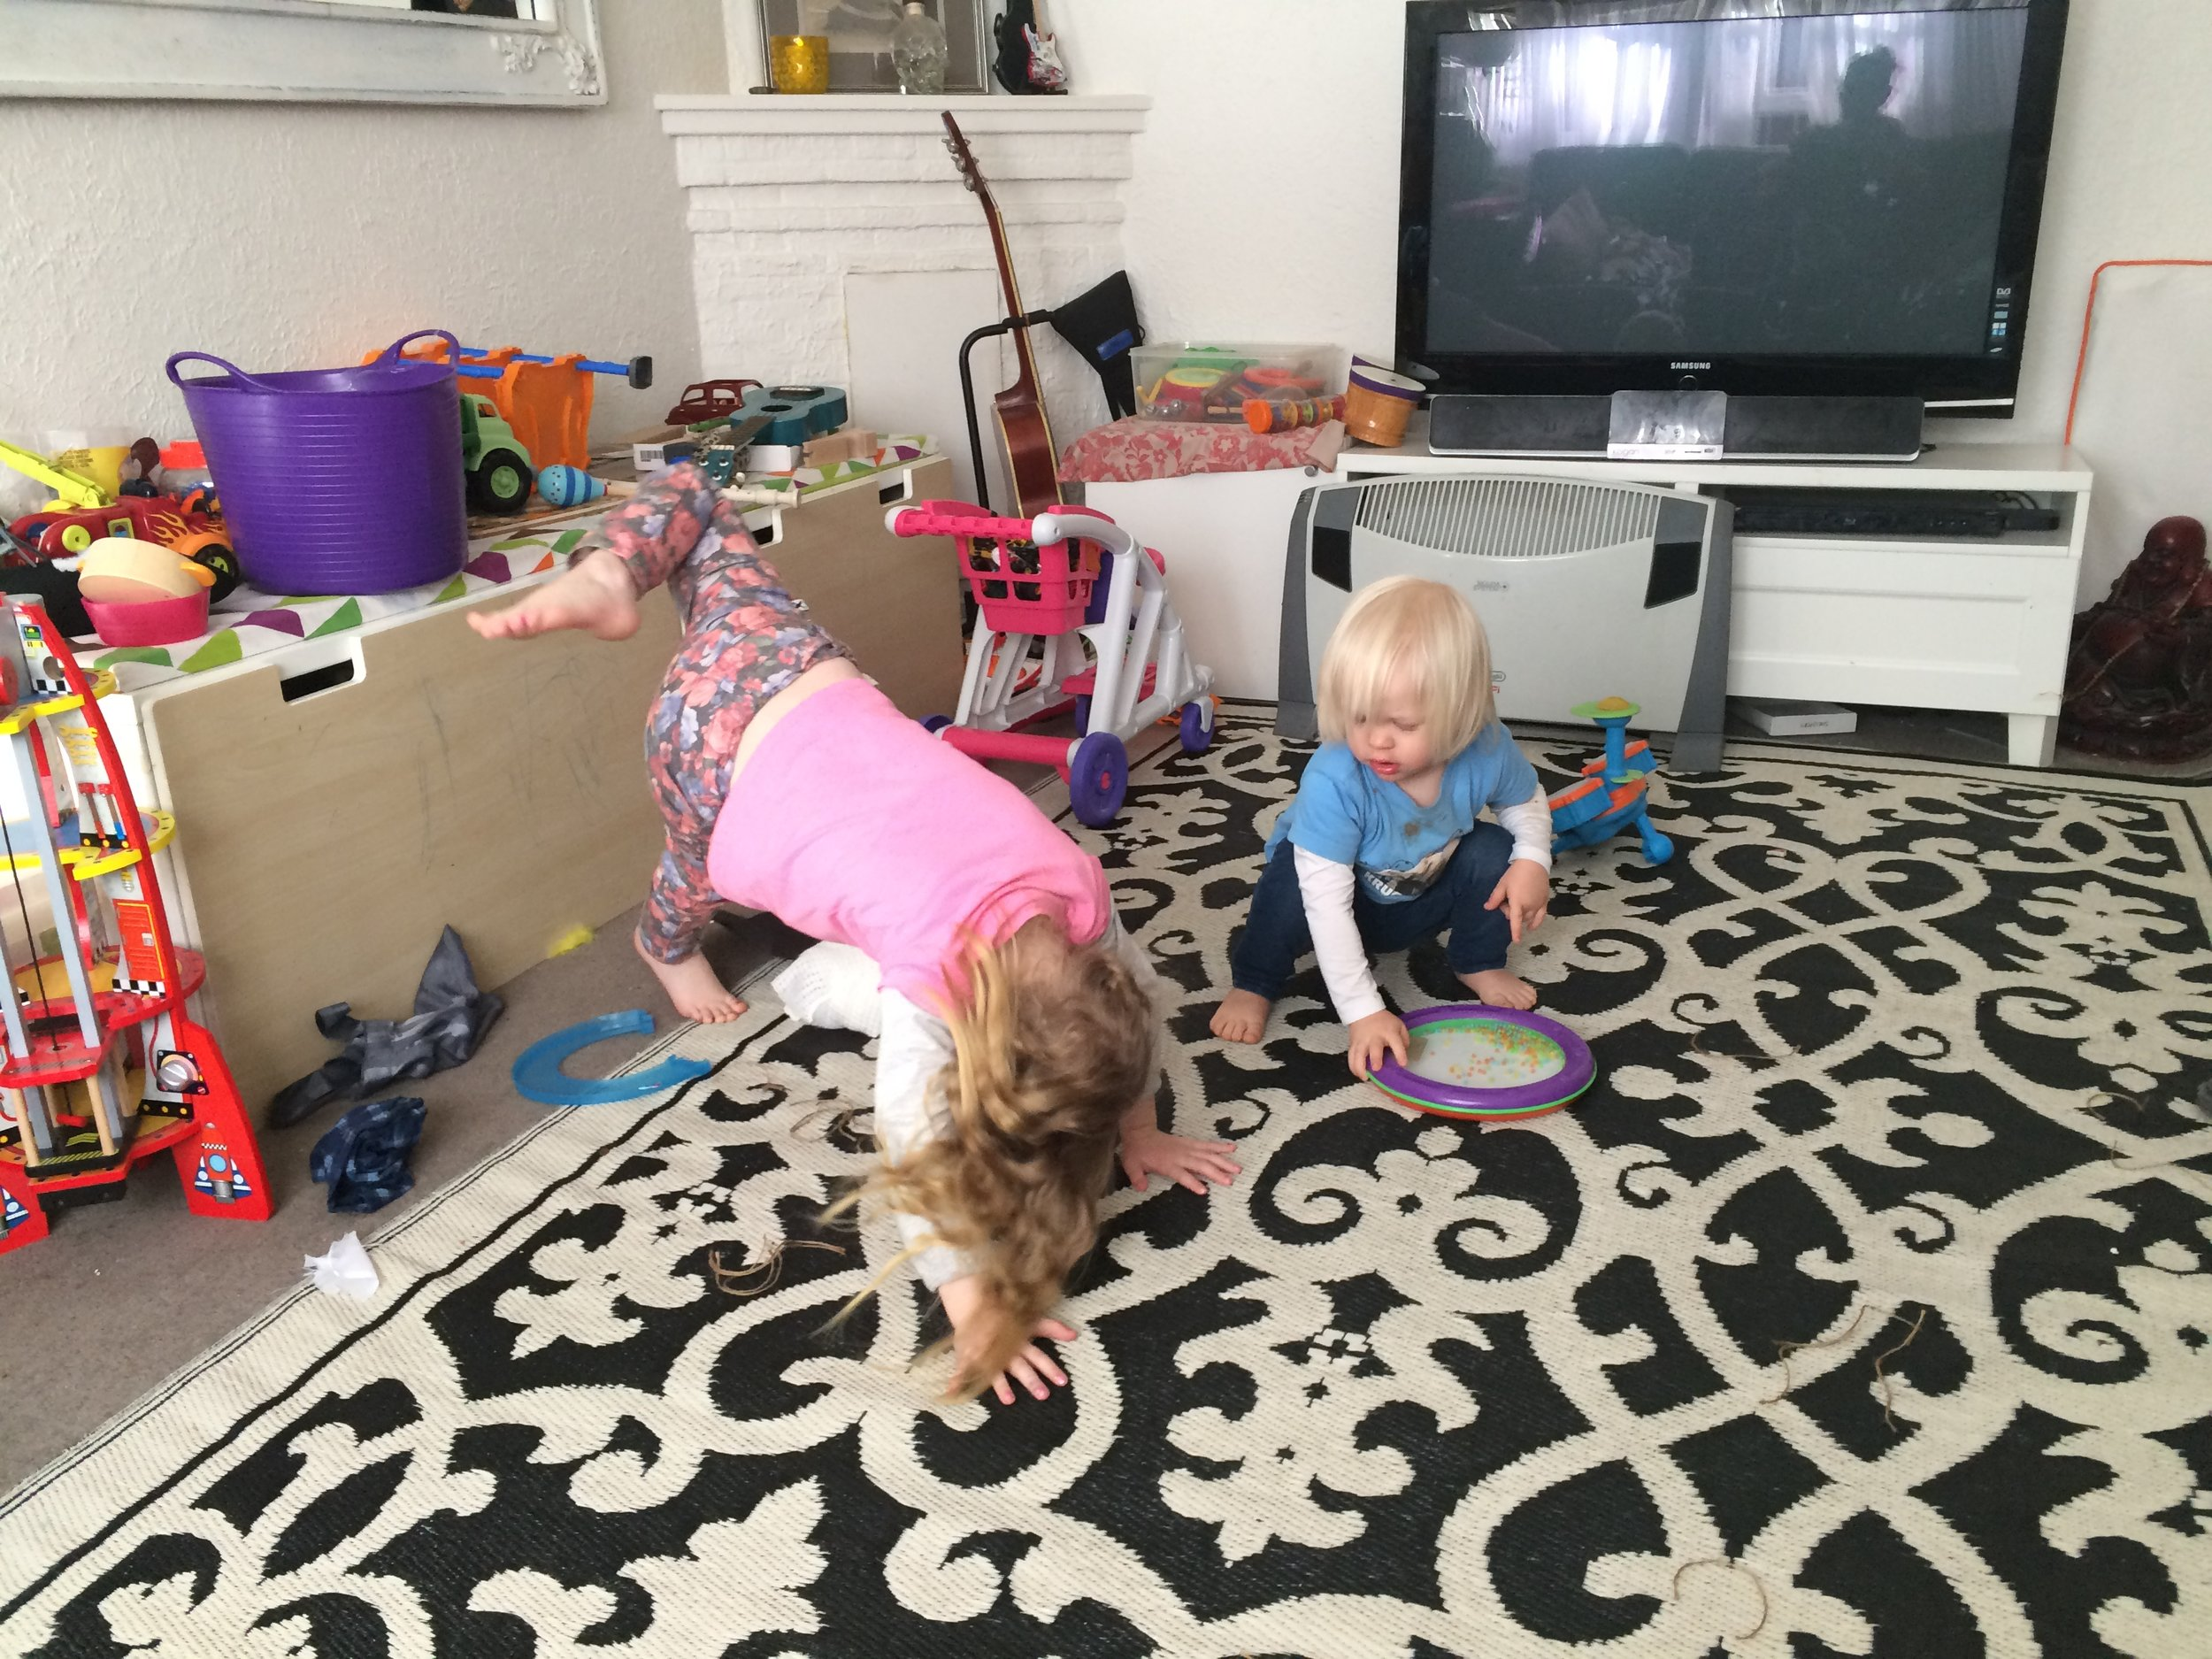 Life with small children can be fun, but it sure is messy!